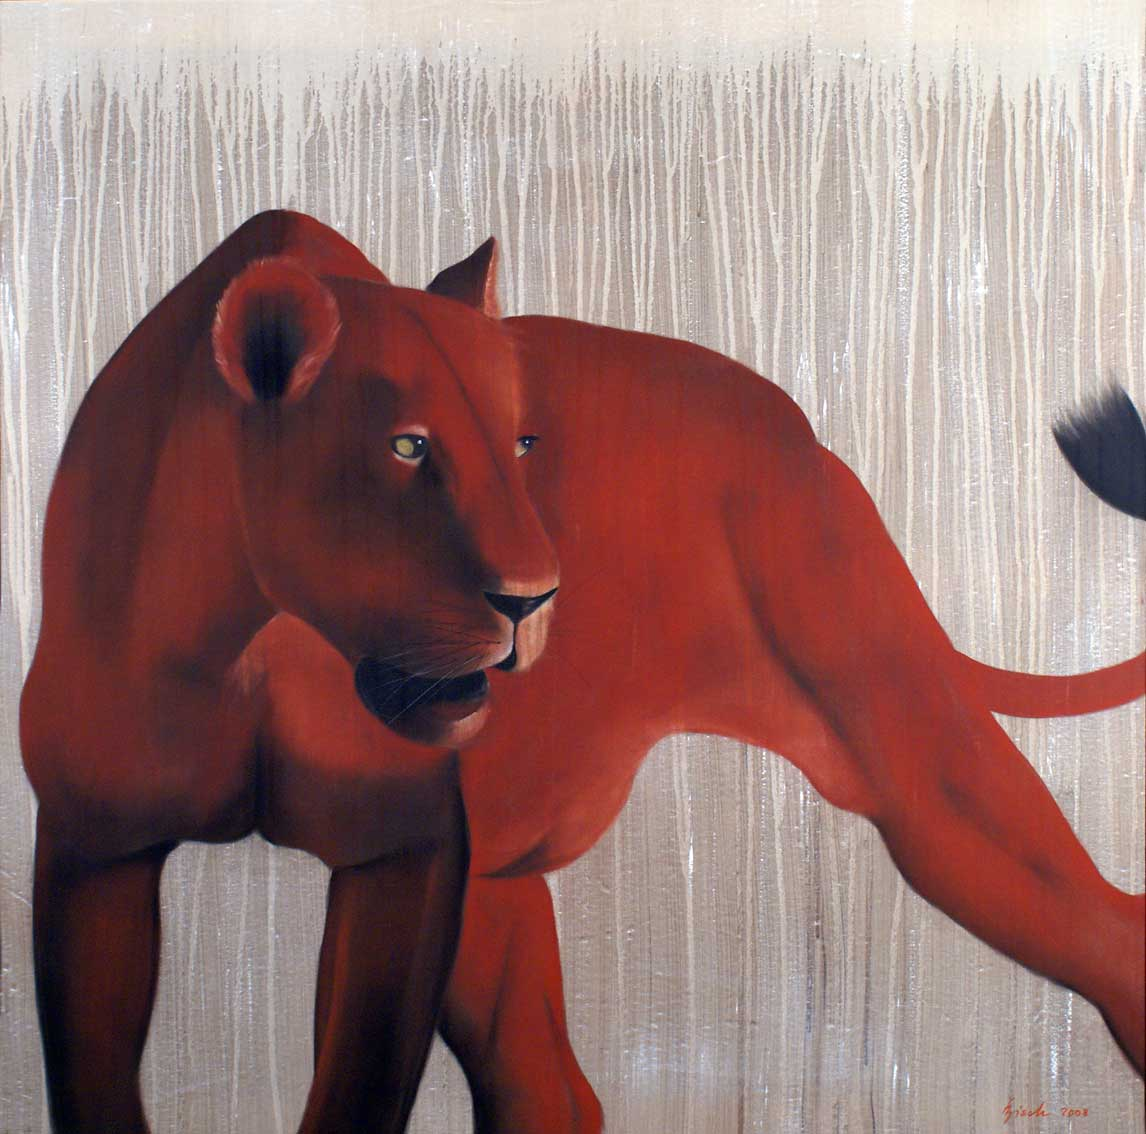 RED-LIONESS lioness-lion-red-panthera-leo-felidae-decoration-large-size-printed-canvas-luxury Thierry Bisch painter animals painting art decoration hotel design interior luxury nature biodiversity conservation